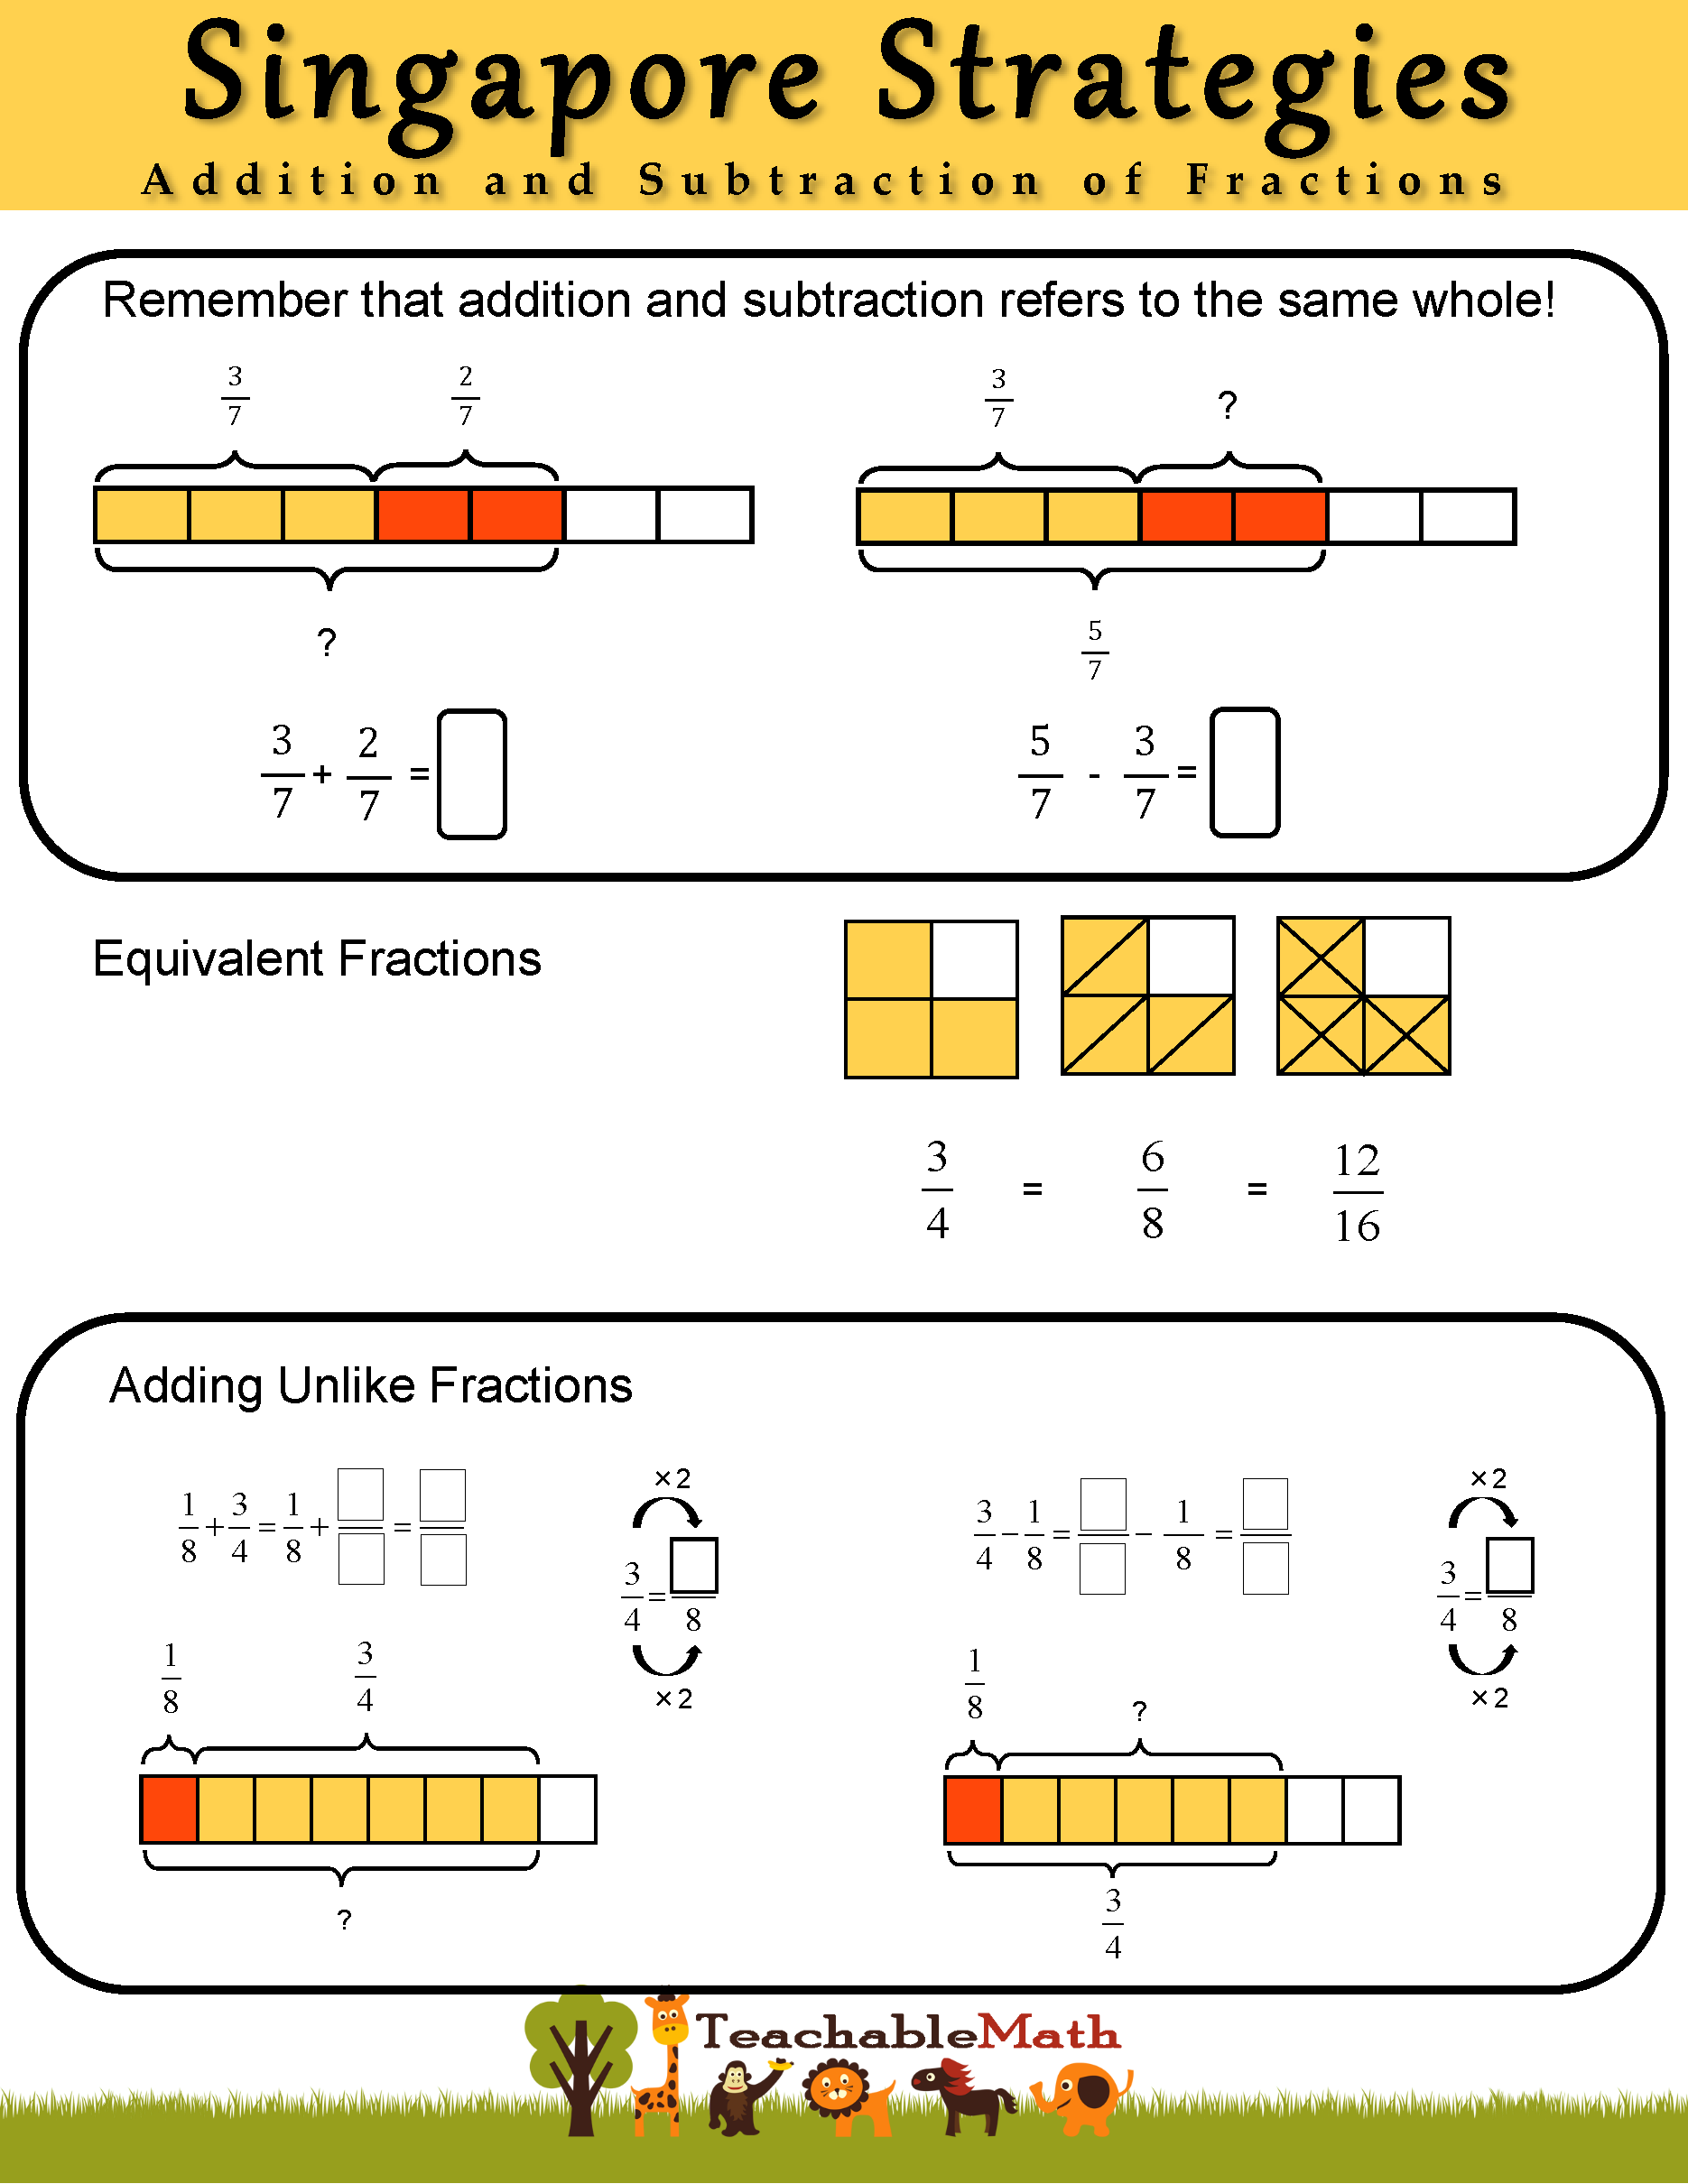 worksheet Fractions Sheet singapore strategies cheat sheets teachablemath addition and subtraction of fractions sheet